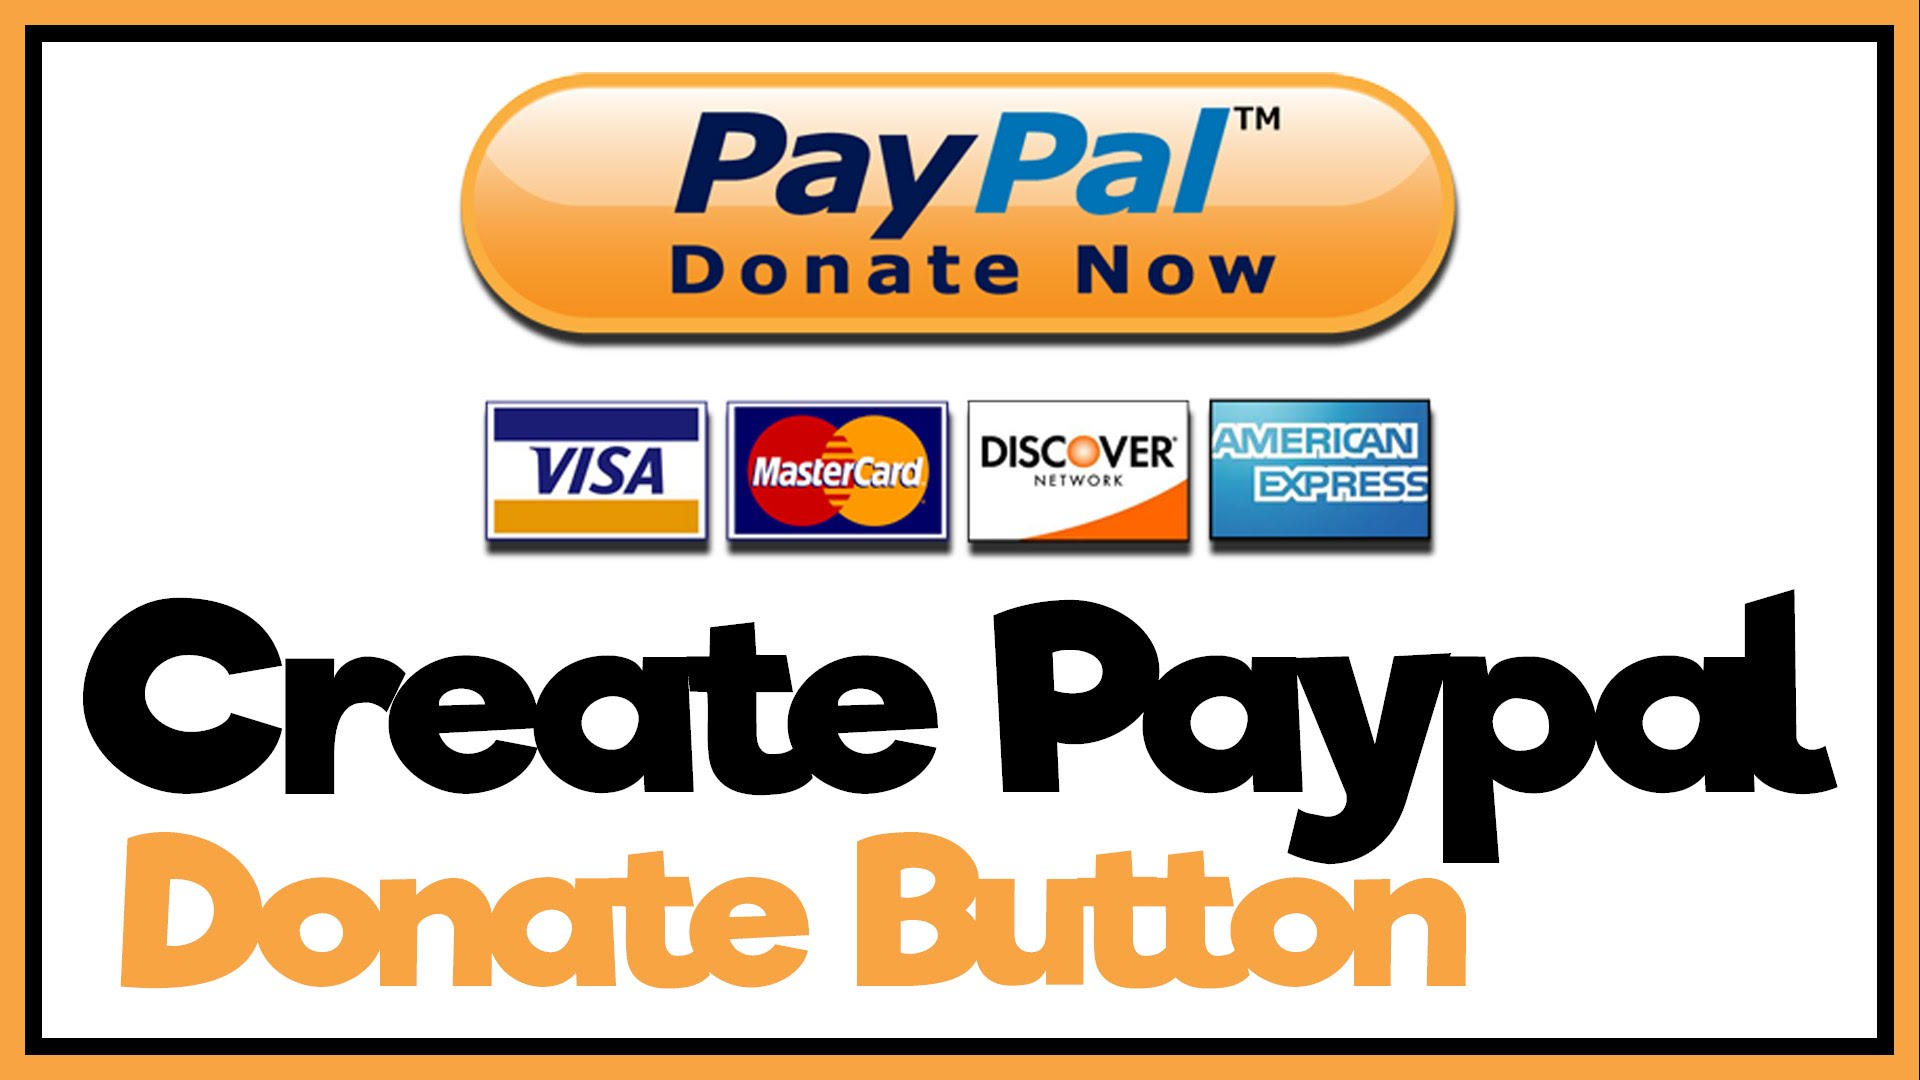 Paypal Donate Button Vector at GetDrawings com   Free for